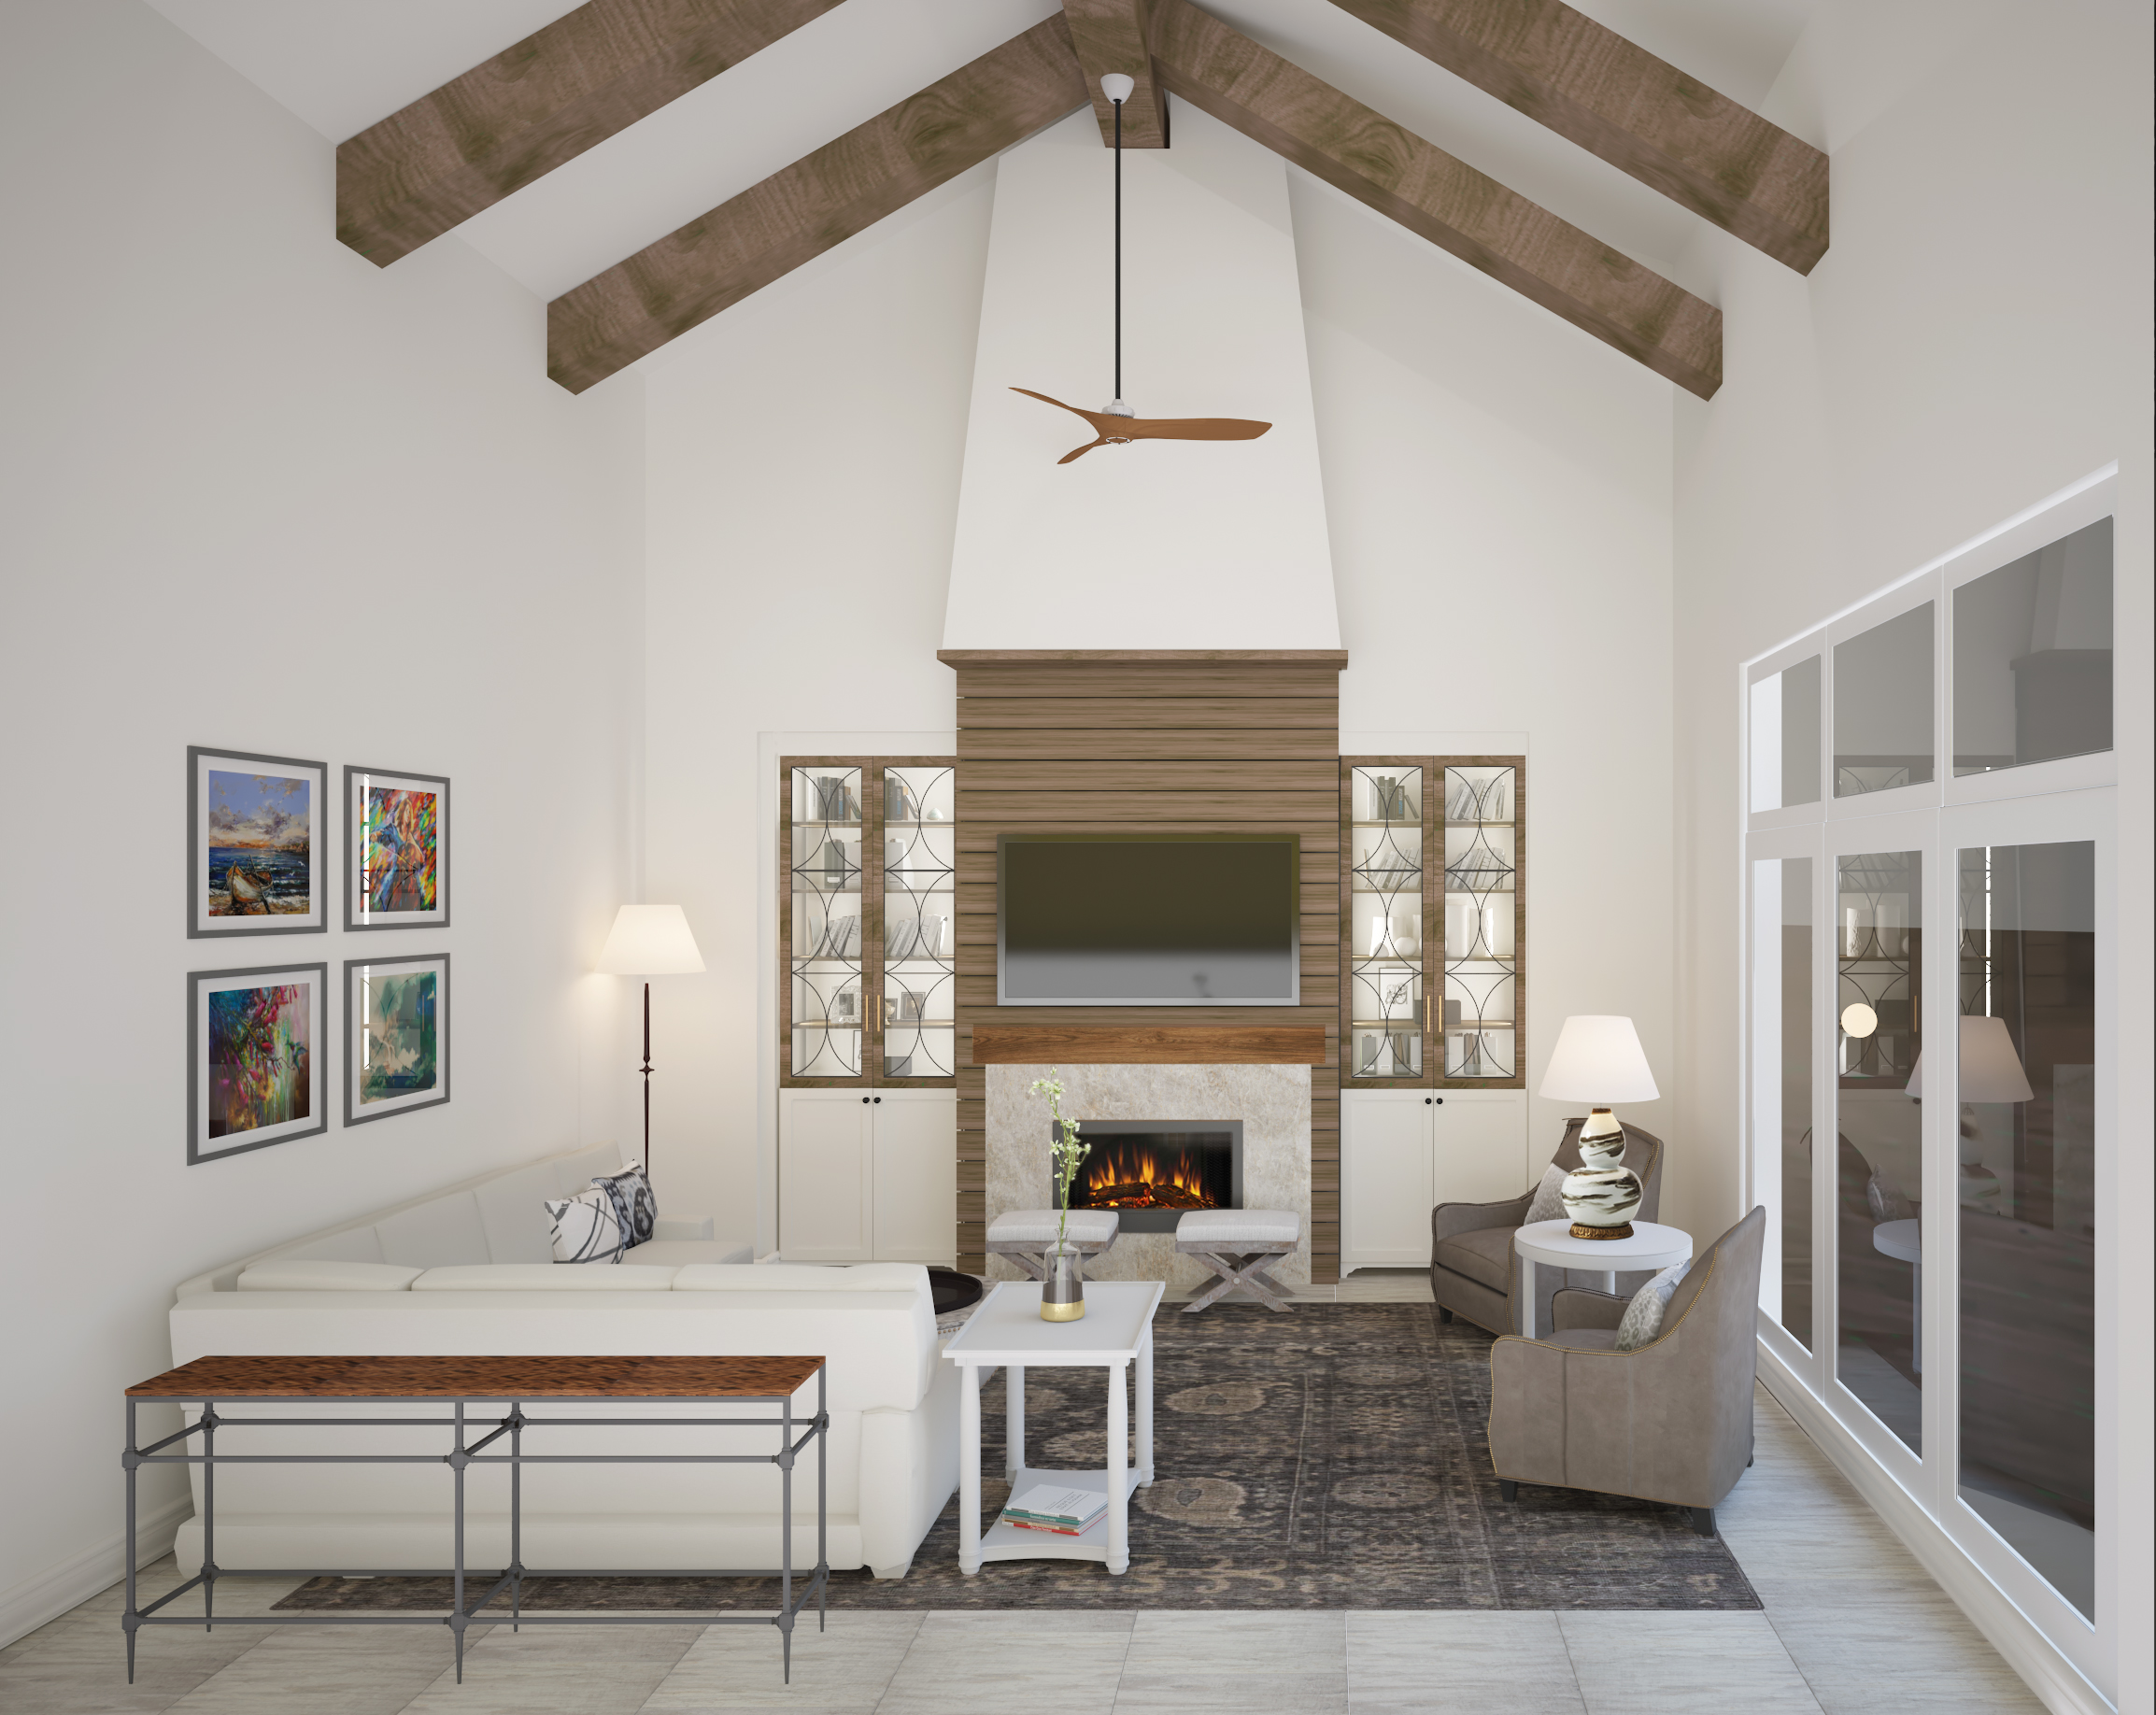 Family room with high ceiling beams, shiplap fireplace, built-in cabinetry | Carla Aston, Designer | Shebin Poothery, Rendering #familyroom #shiplap #woodbeams